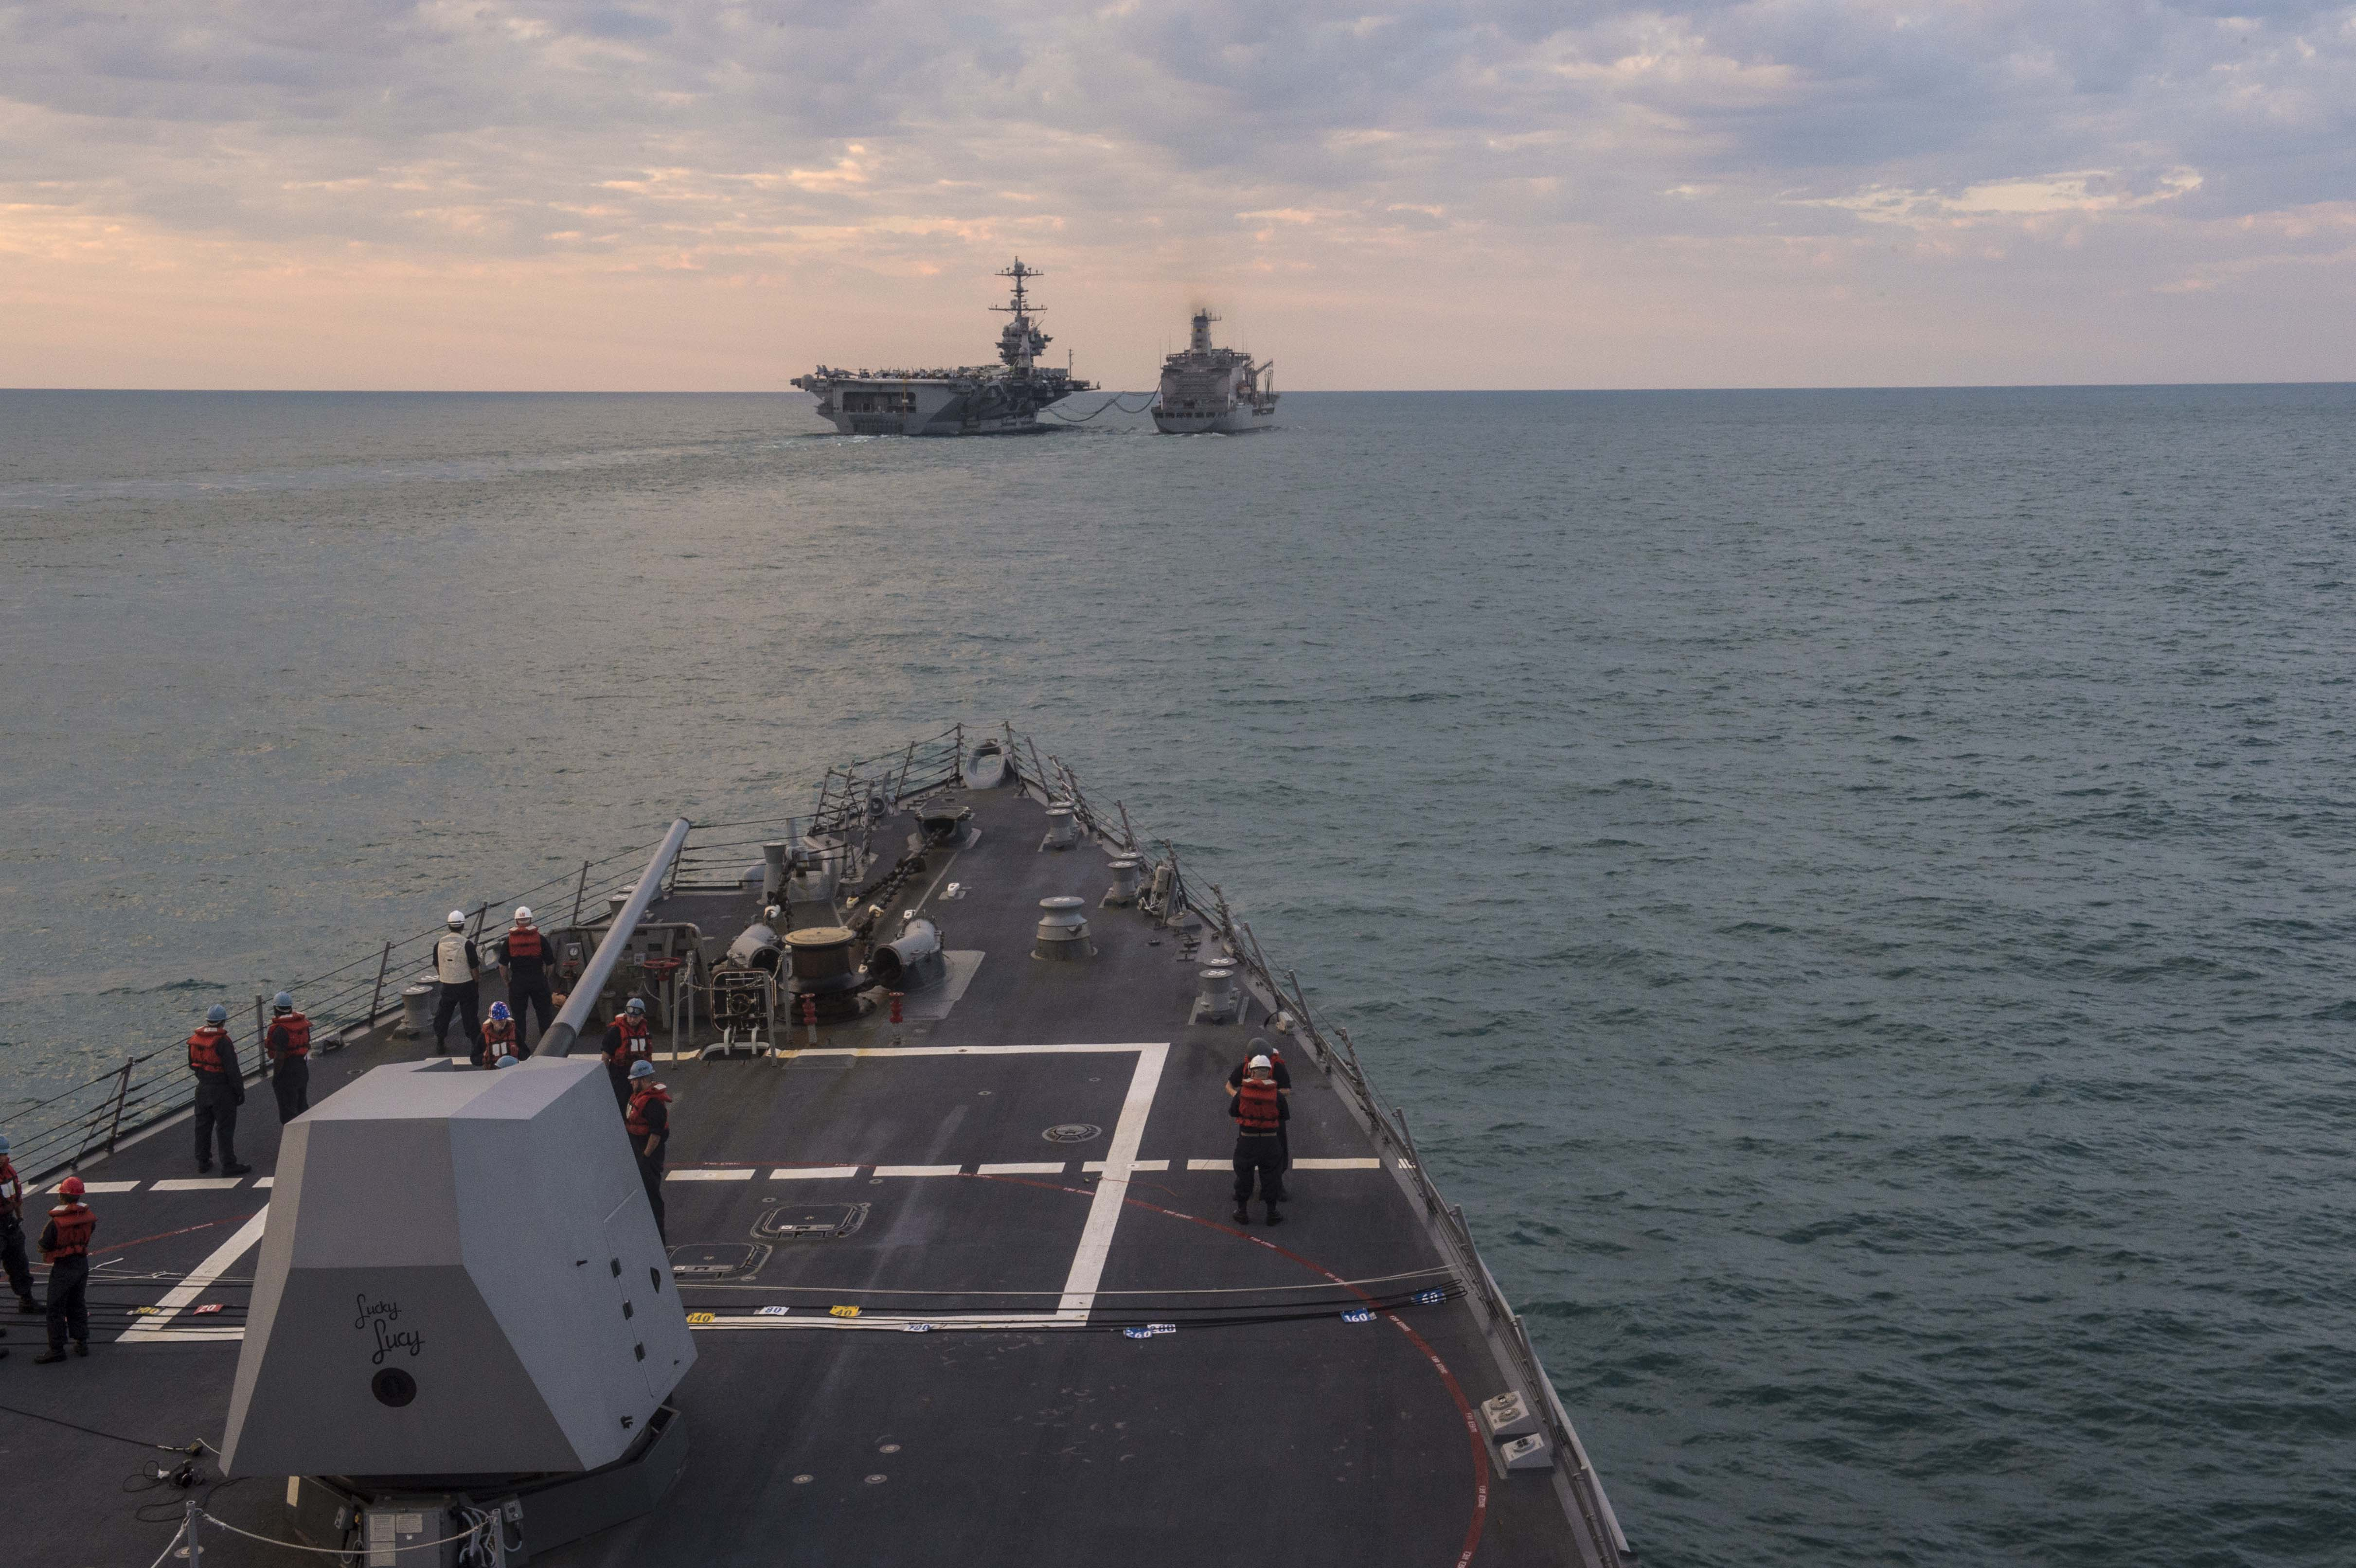 Guided-missile destroyer USS Mustin (DDG-89) prepares to come alongside the Military Sealift Command fleet replenishment oiler USNS Rappahannock (T-AO 204) as the ship conducts a replenishment-at-sea with the Nimtz-class aircraft carrier USS George Washington (CVN-73) during exercise Talisman Sabre 2015 on July 6, 2015. US Navy Photo